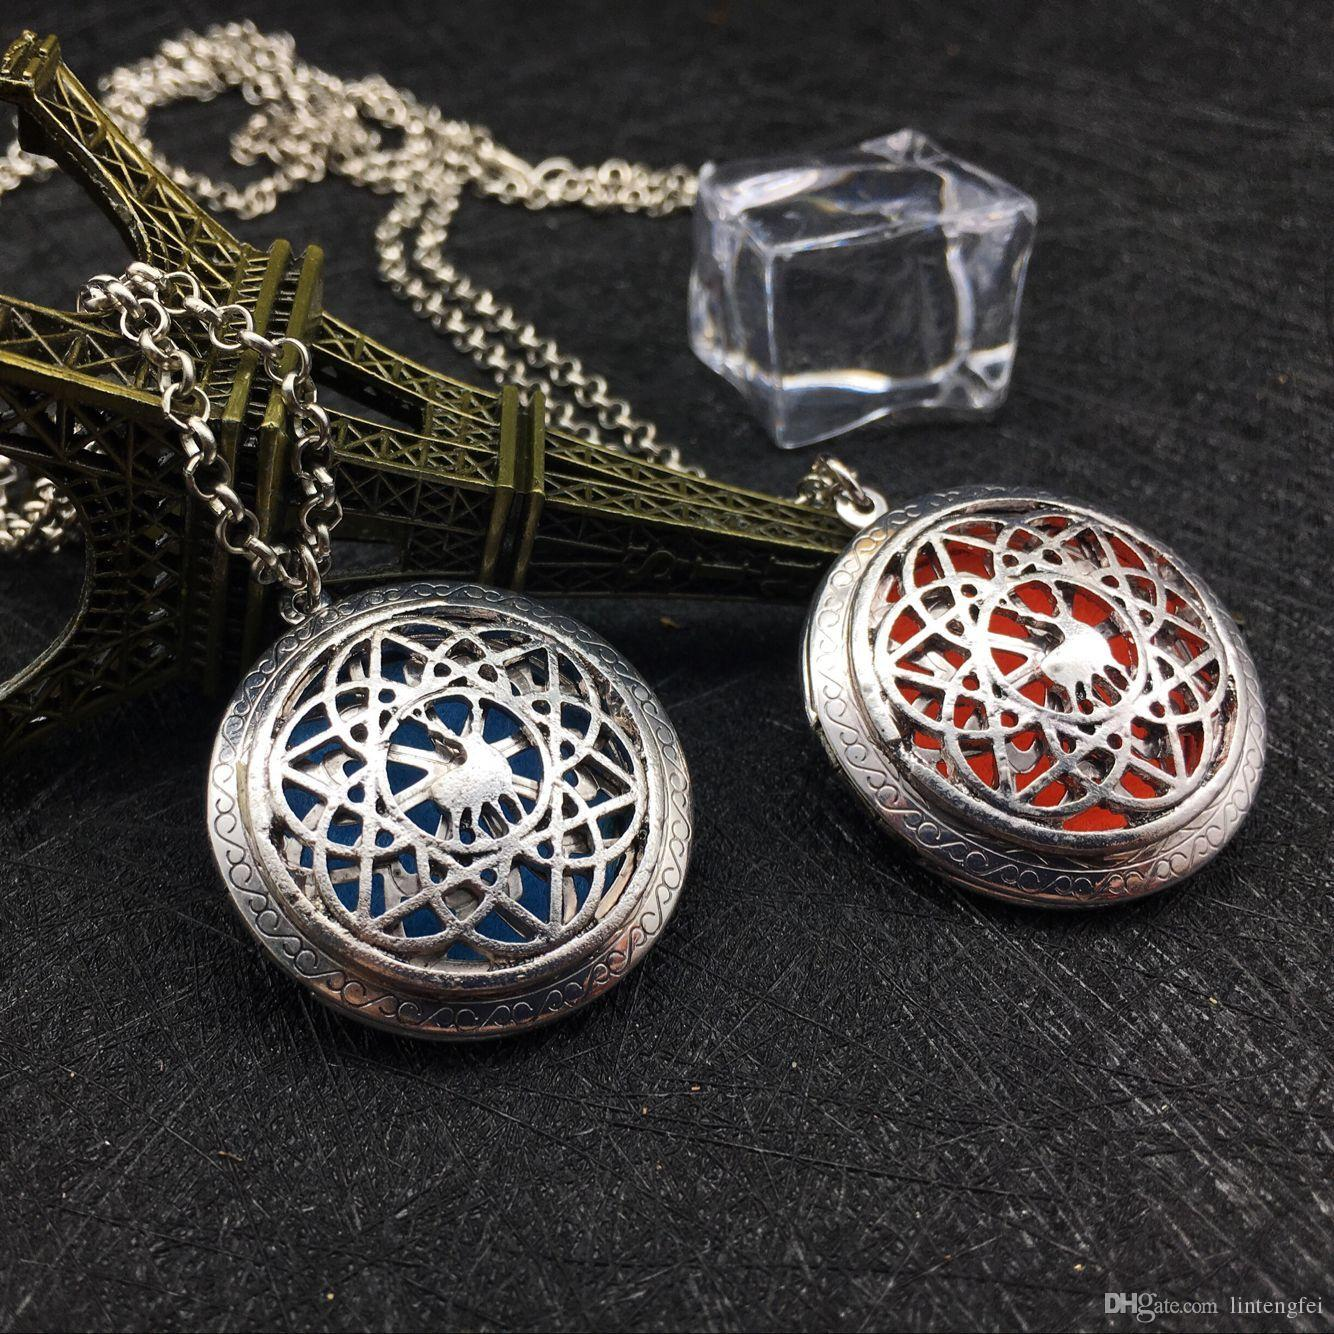 1 package classic style sweater necklace sweater sika necklace aromatherapy essential oil necklace Christmas Can open the photo box